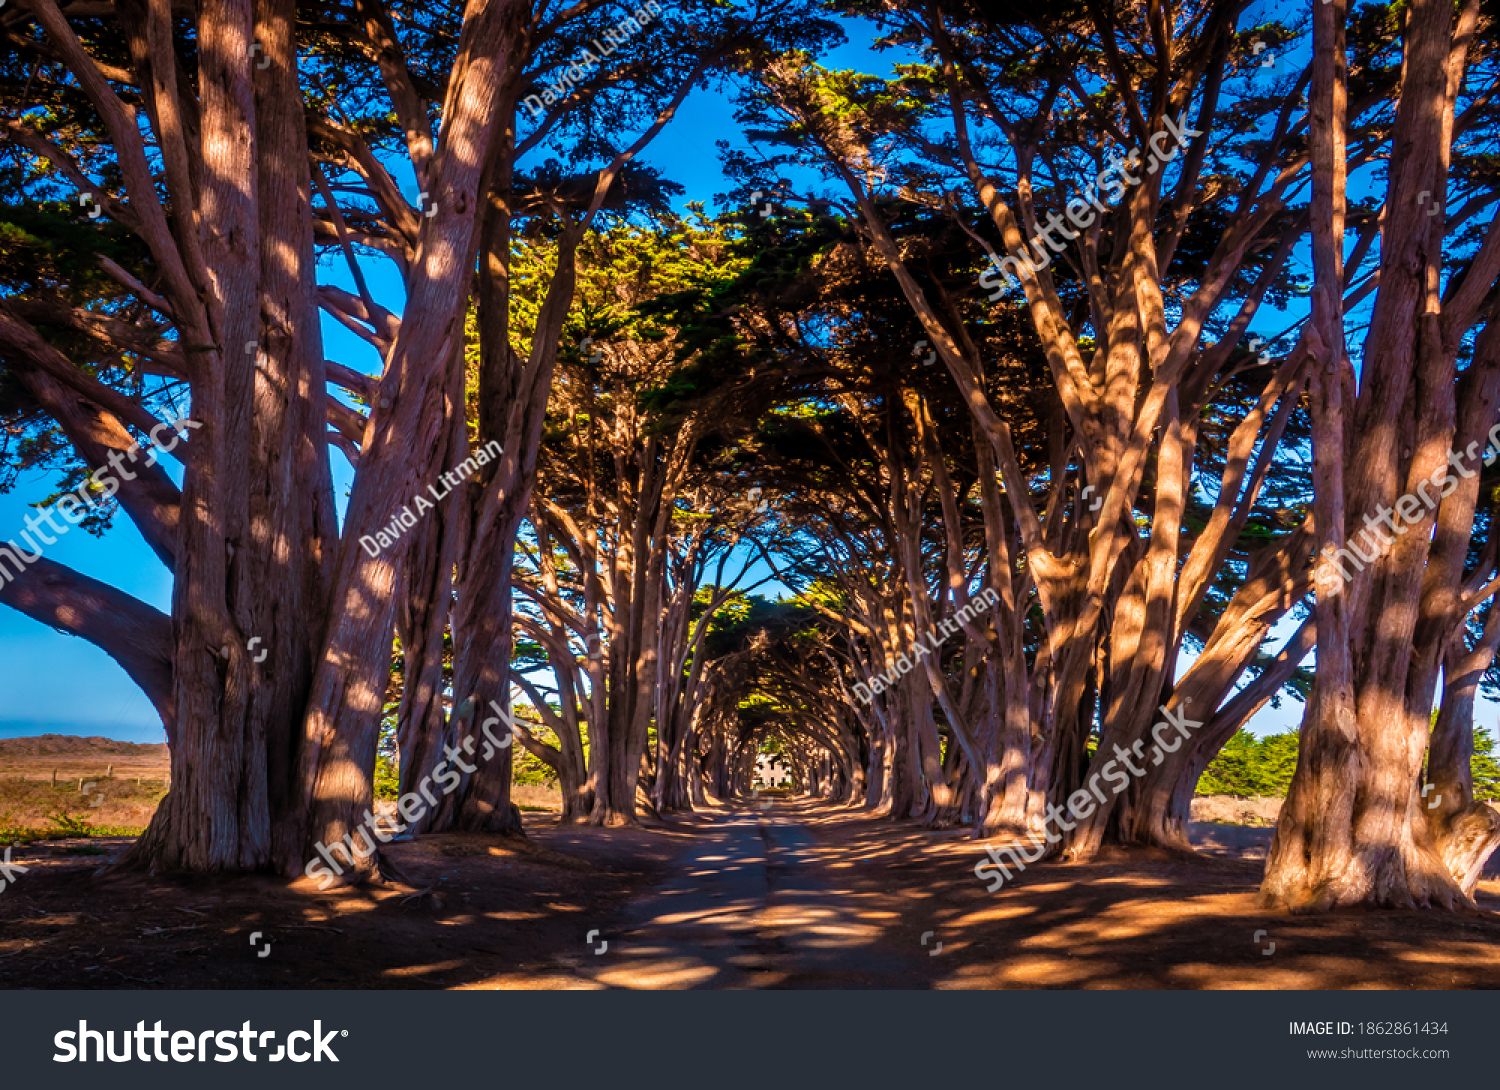 The Monterey Cypress tree tunnel, at the Point Reyes National Seashore, was planted around 1930.